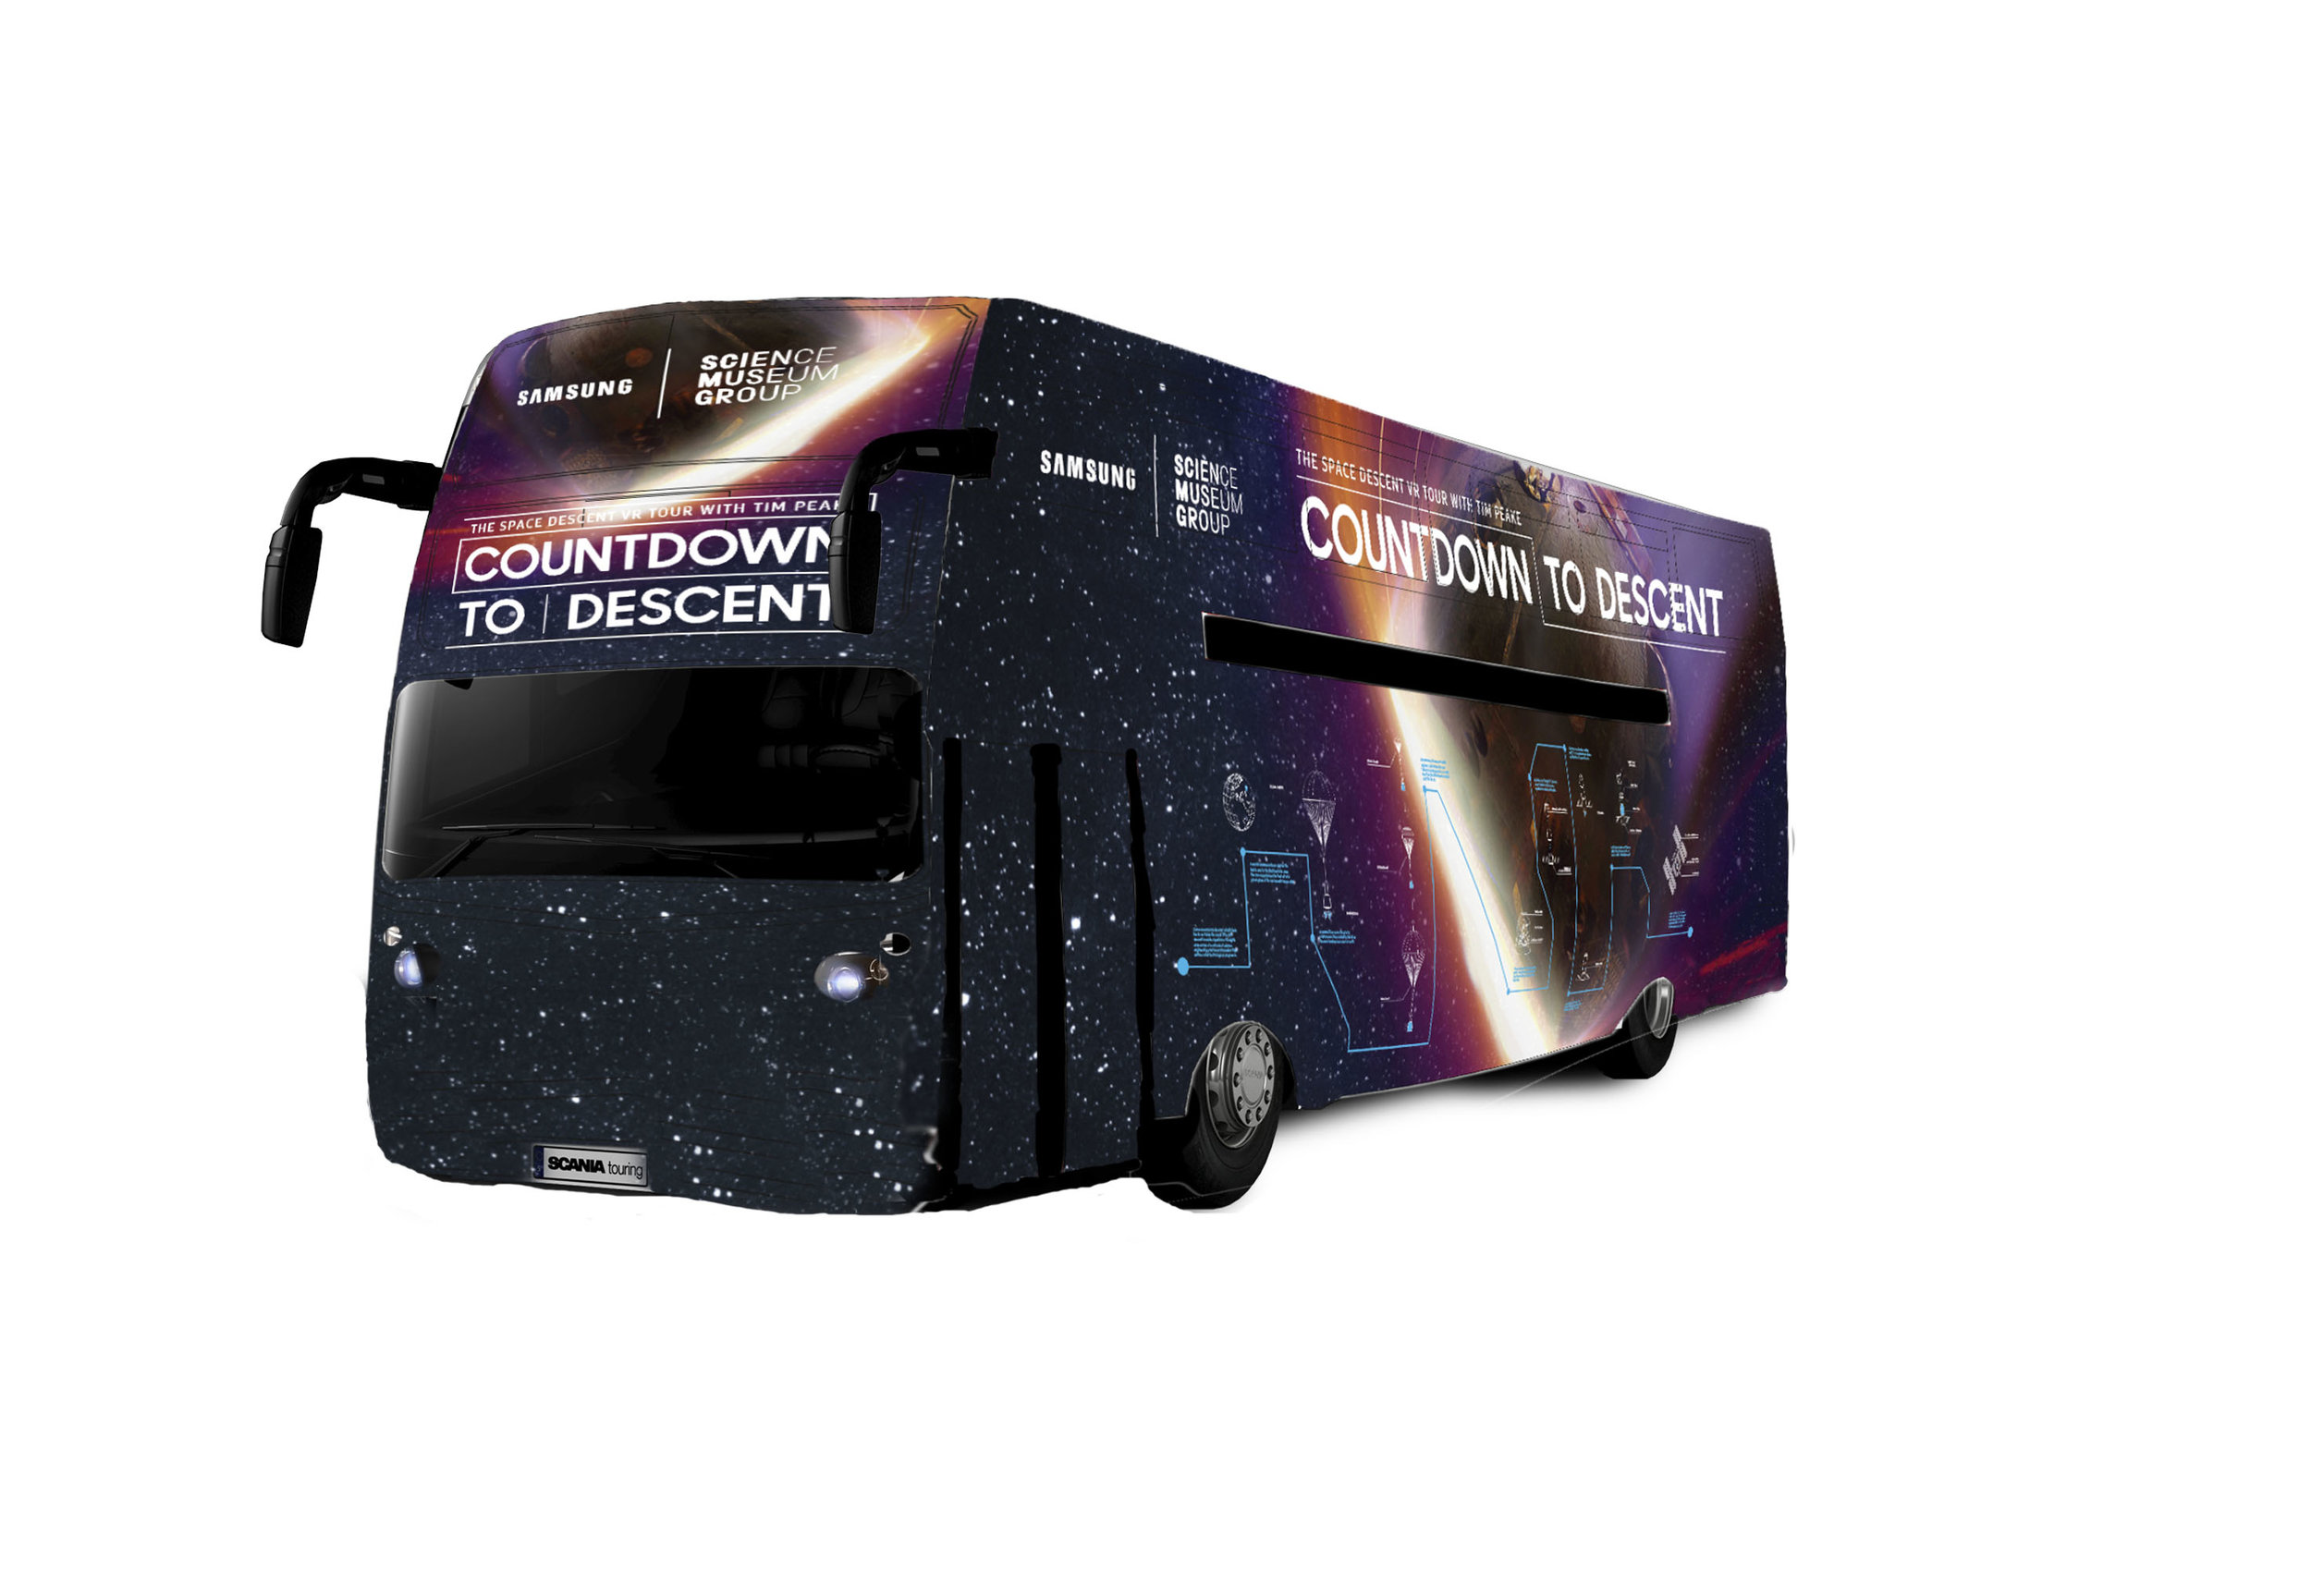 - Samsung wanted a way to highlight their partnership with the Science Museum. So we created Countdown To Descent. The travelling bus tour went across the country. With the help of the Gear VR,It allowed thousands of kids to experience astronaut Tim Peake's journey to earth.